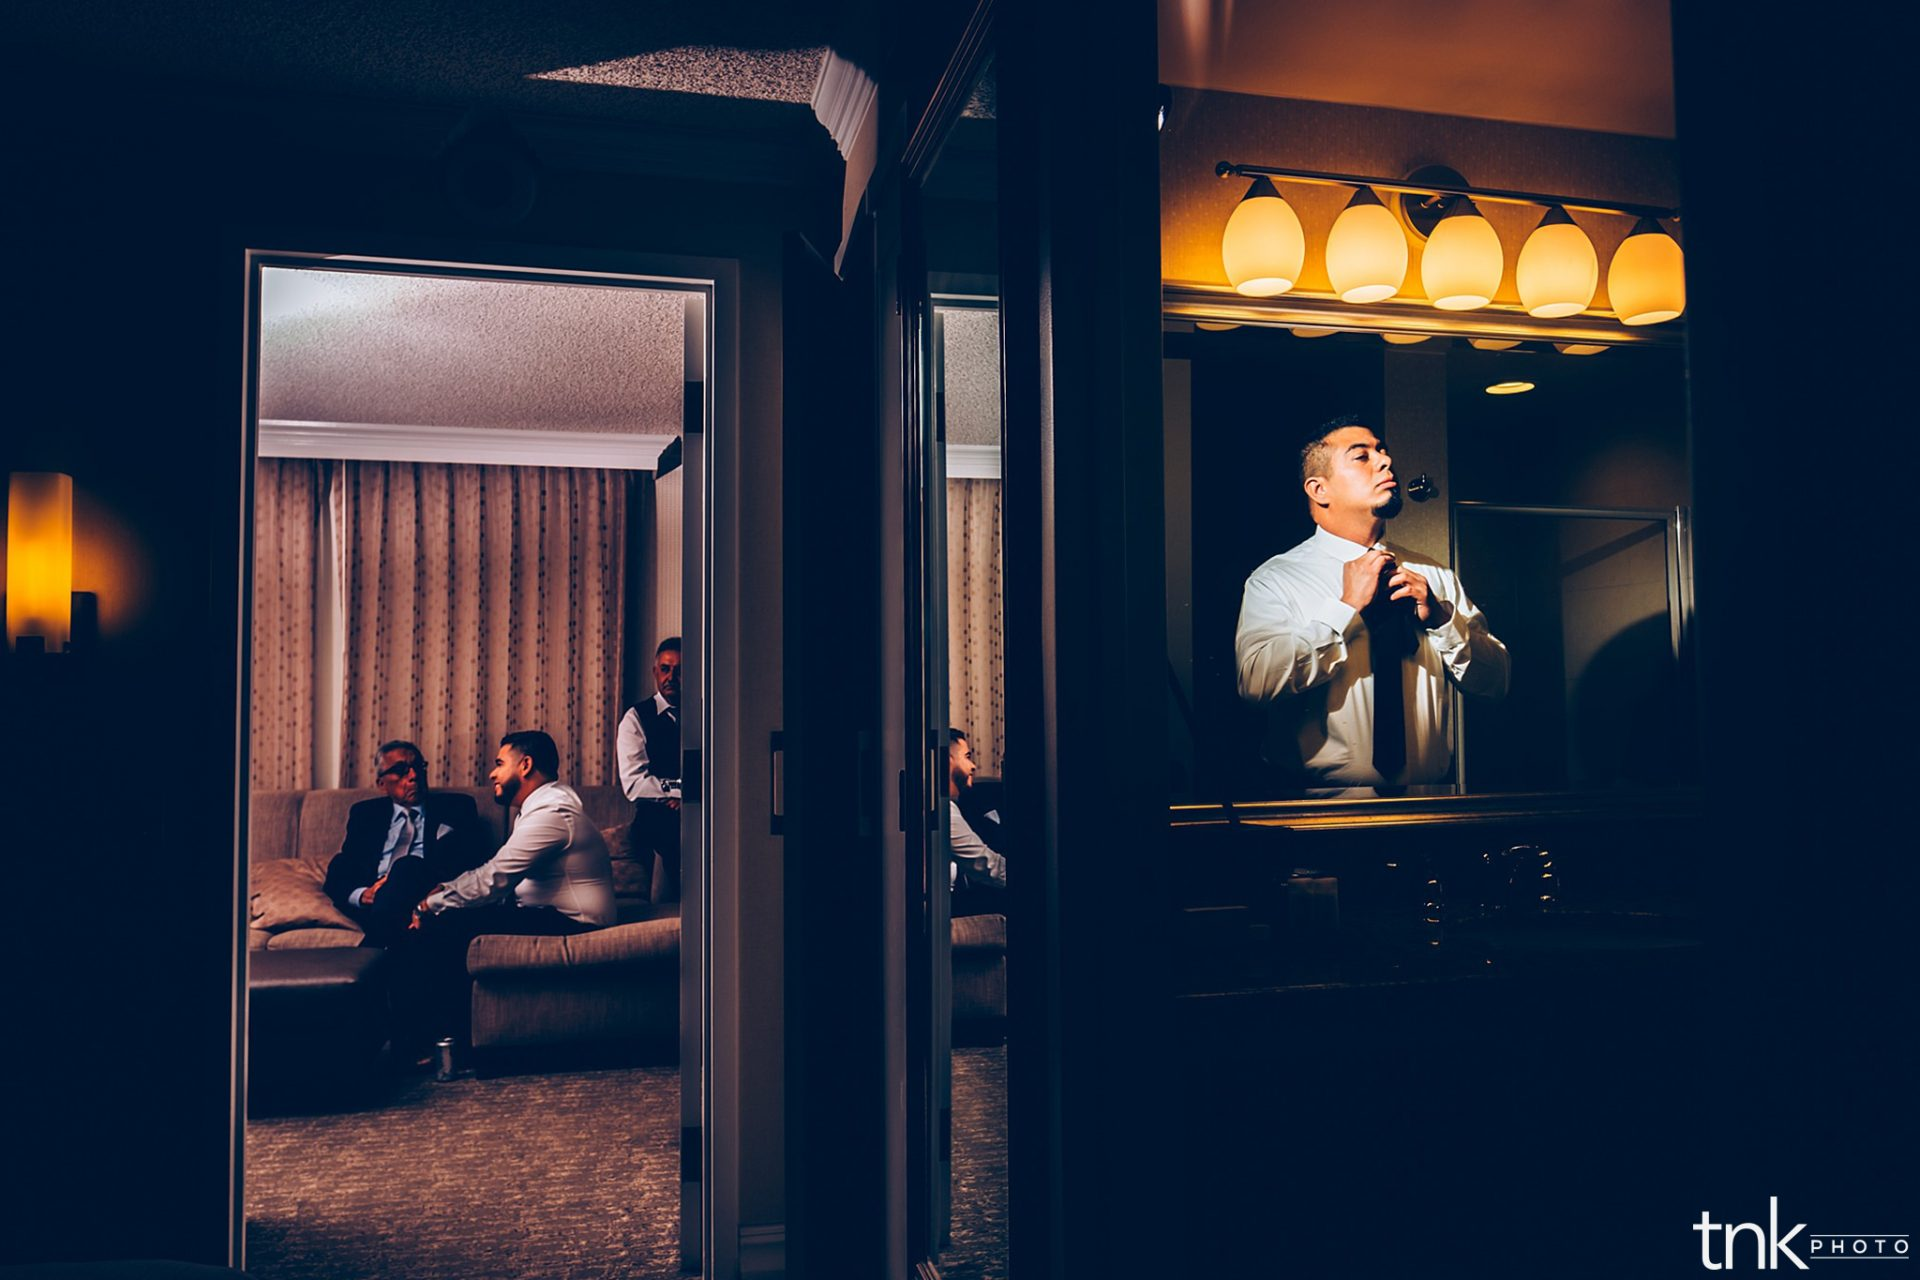 Groom Getting Ready | Photographing the Groom